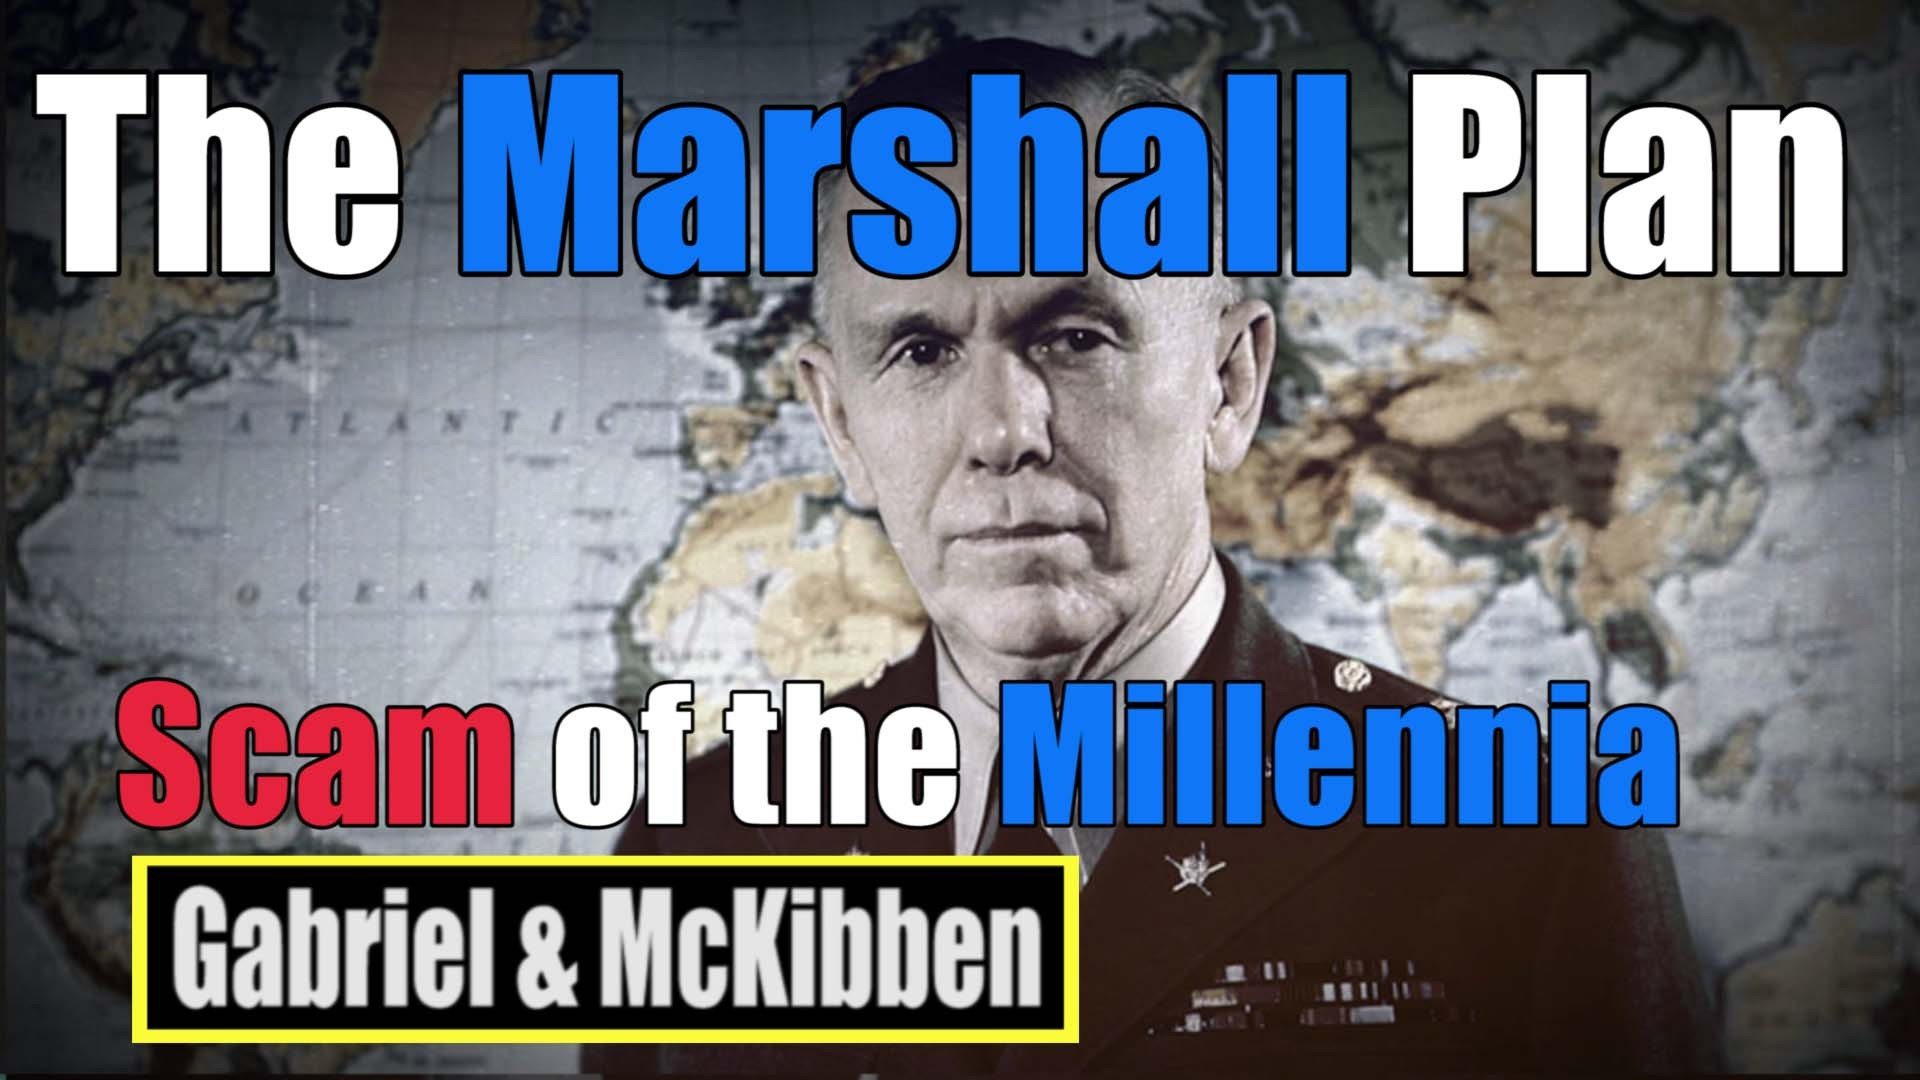 Gabriel, McKibben, (Jul. 28, 2020). The Marshall Plan Scam of the Millenia. American Intelligence Media, Americans for Innovation.